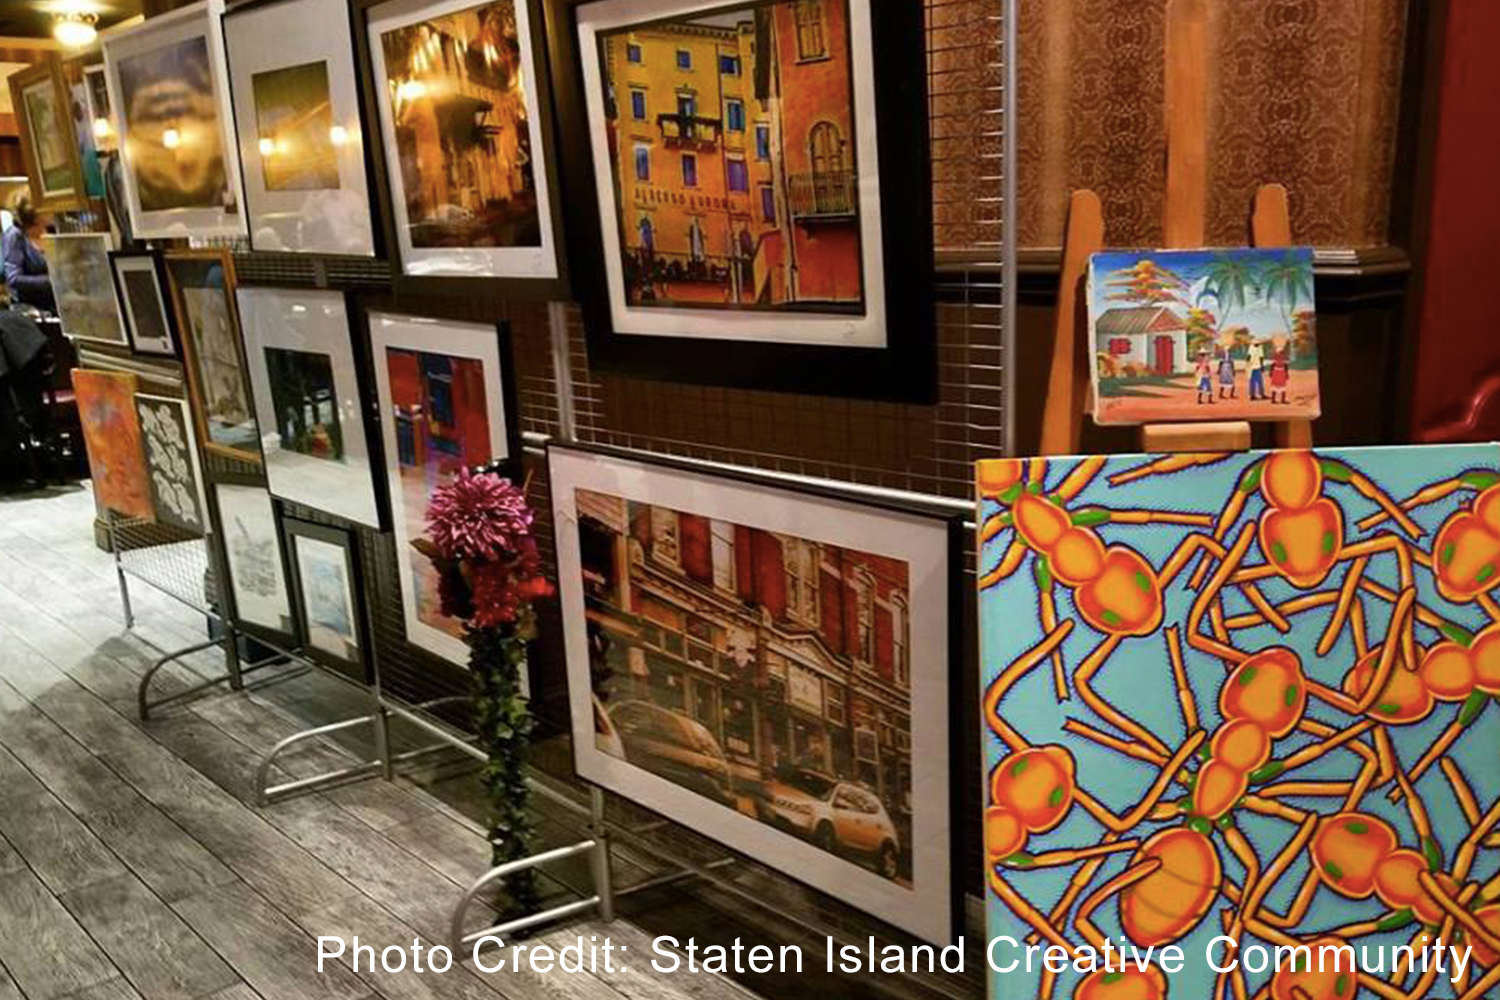 Art on the Terrace - Art on the Terrace is an art gallery of the Staten Island Creative Community, which aims to provide a support vehicle for established and emerging creatives.776 Richmond Terrace, Staten Island, NY 10301sicreative.org